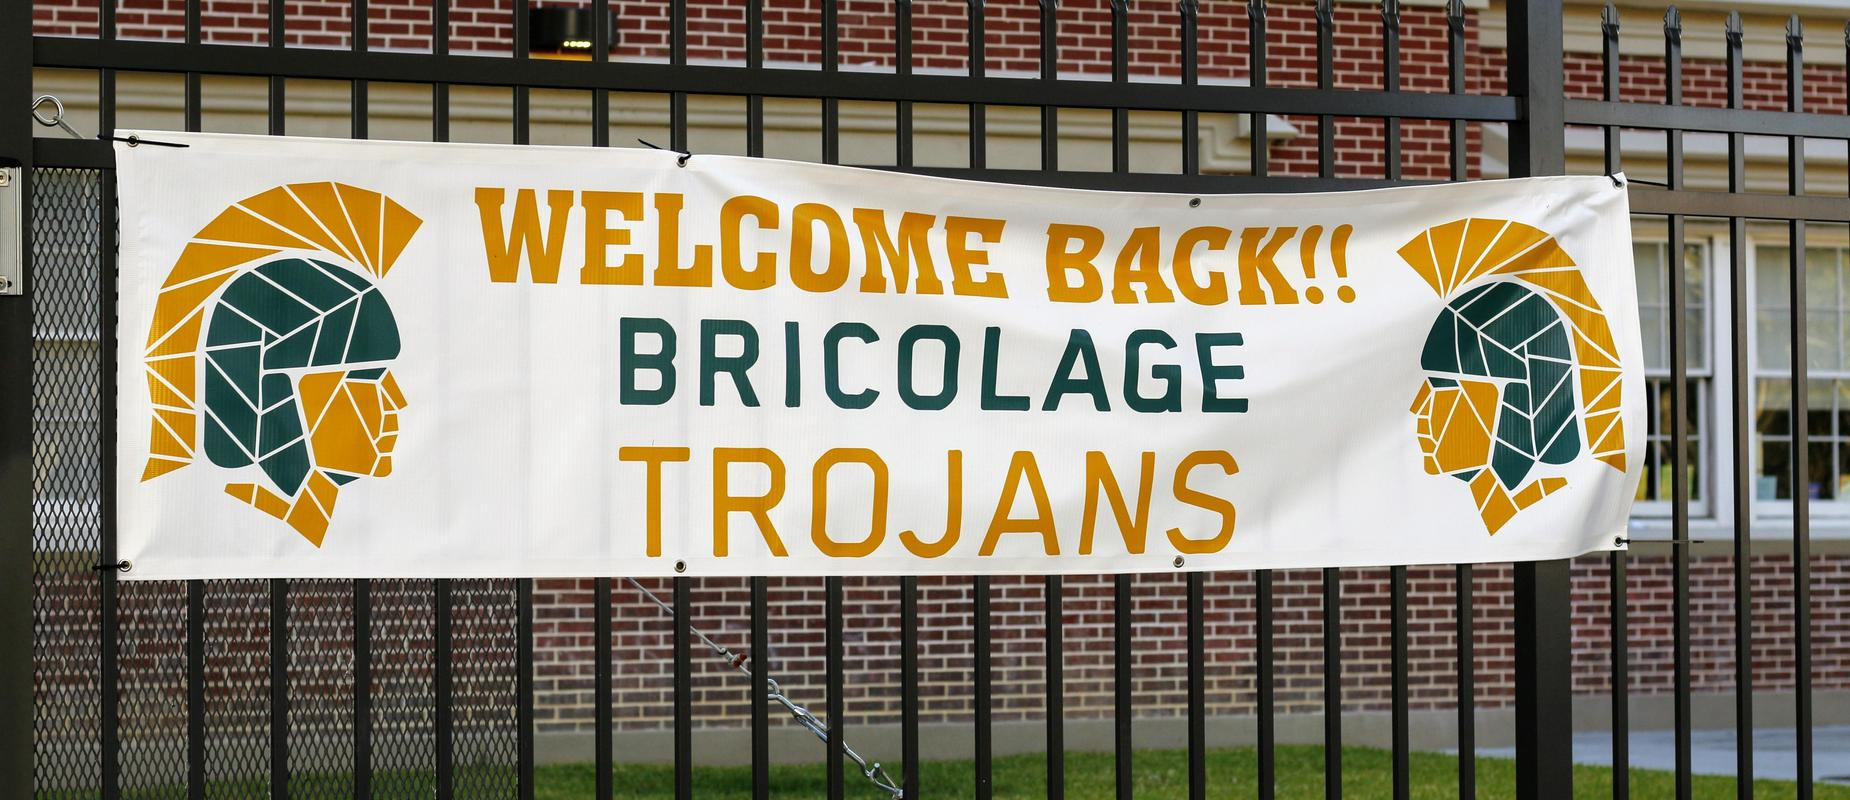 Welcome Back Bricolage Trojans